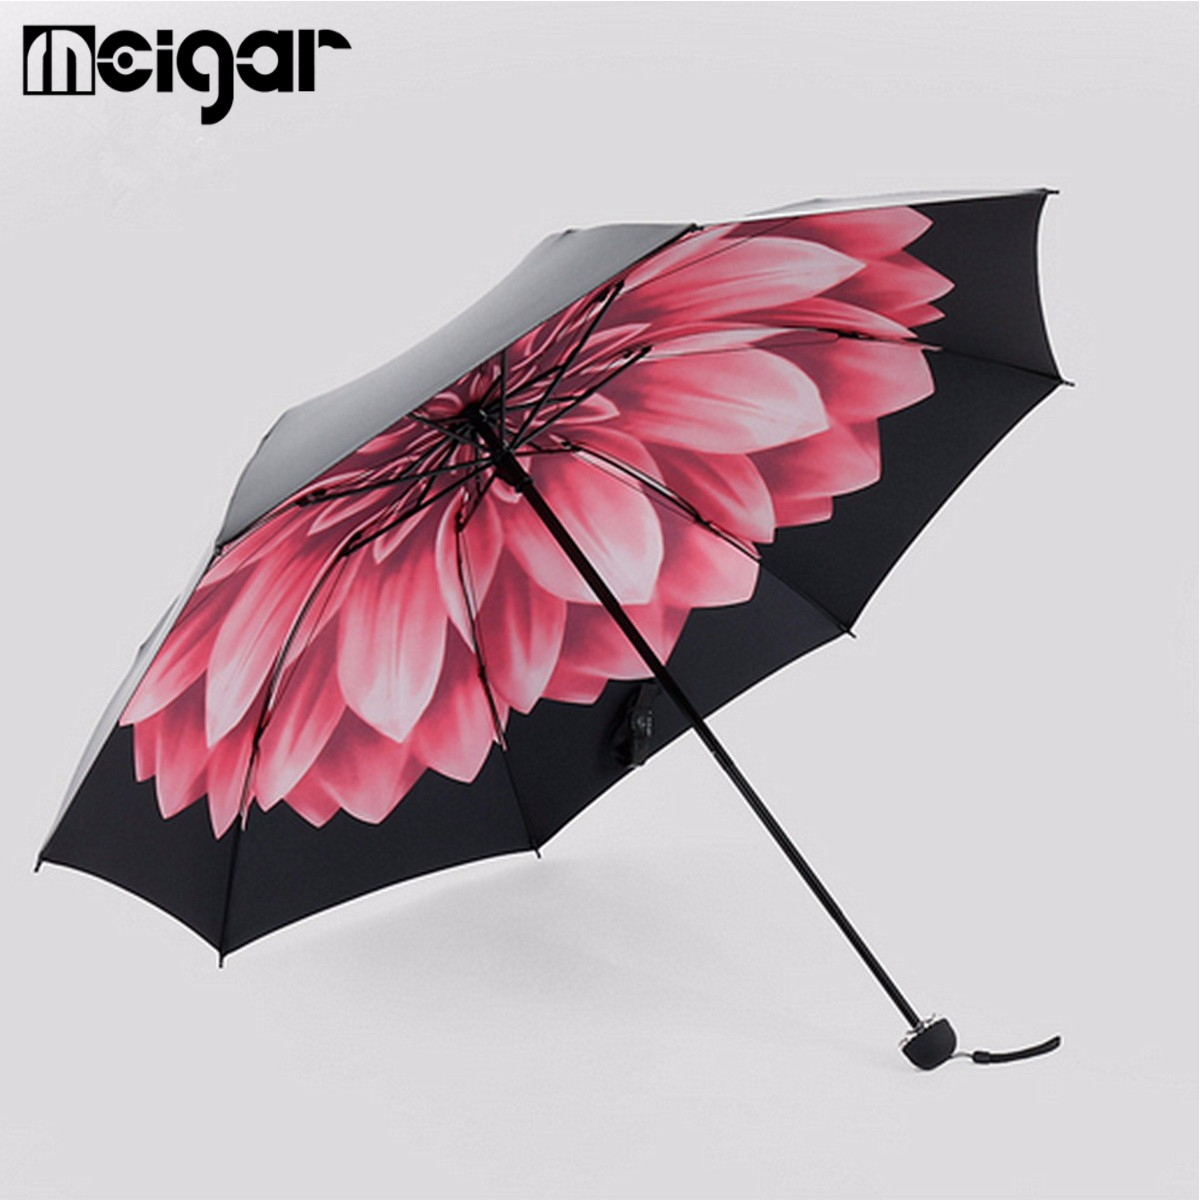 Online Get Cheap Parasol Sun Umbrella -Aliexpress.com | Alibaba Group